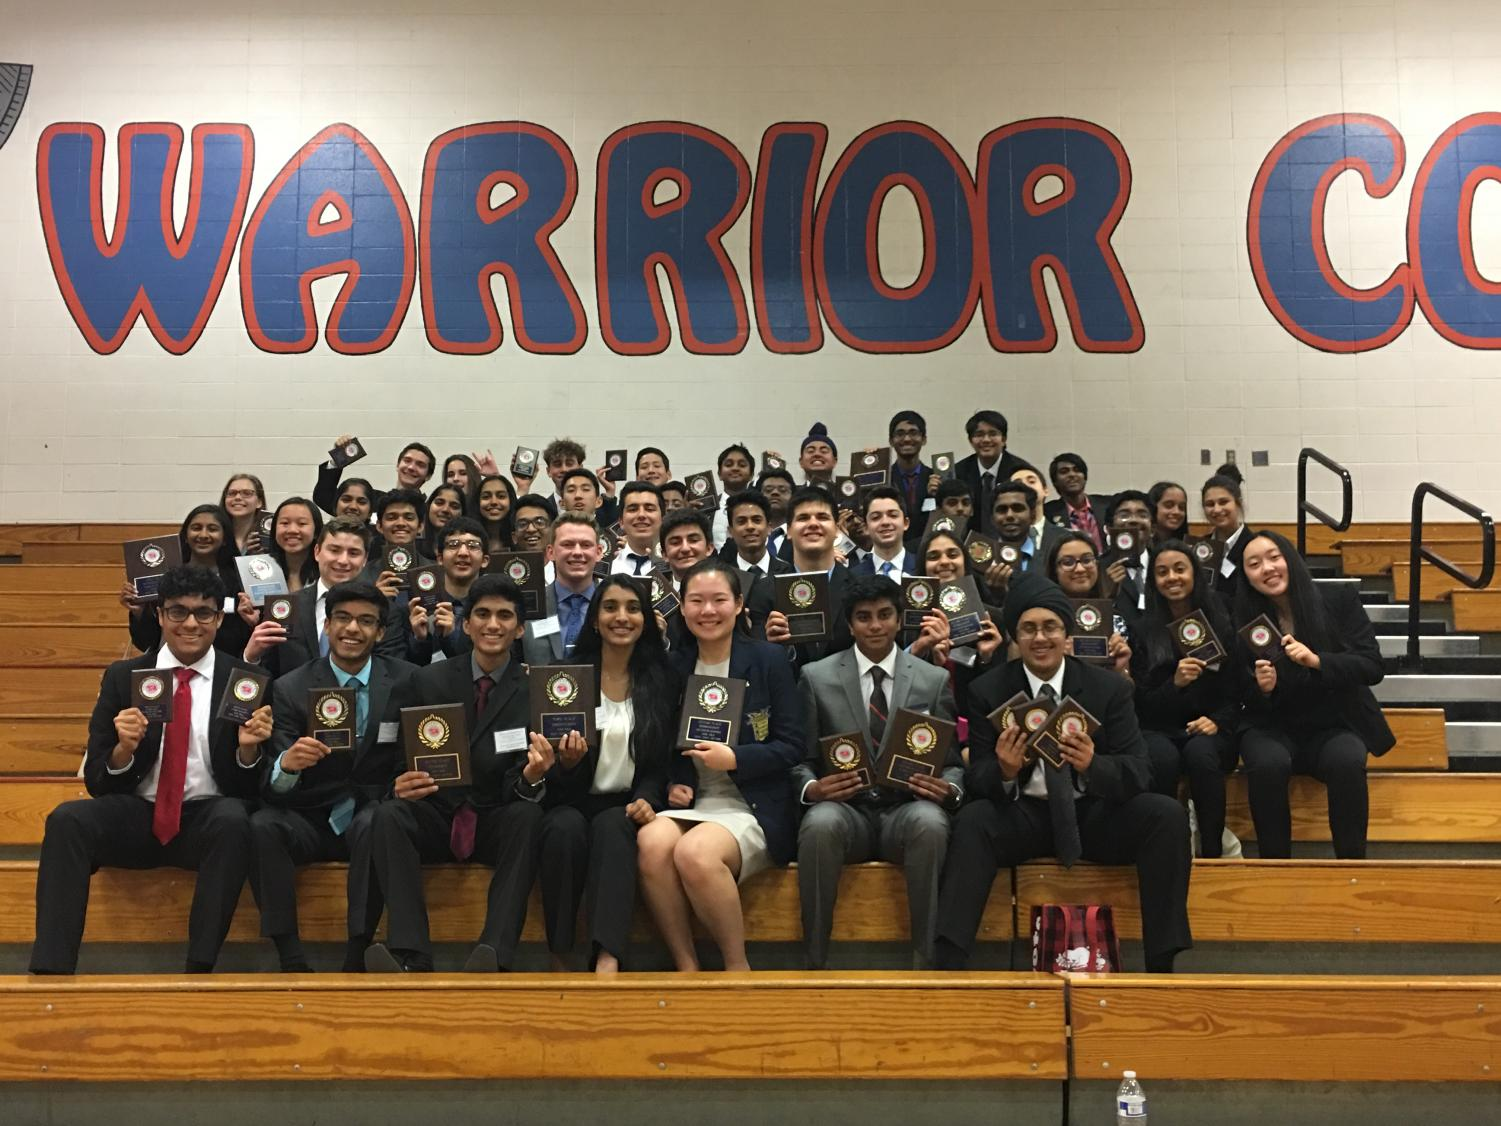 Members of FBLA display their awards. The FBLA team won third place at a regional conference.